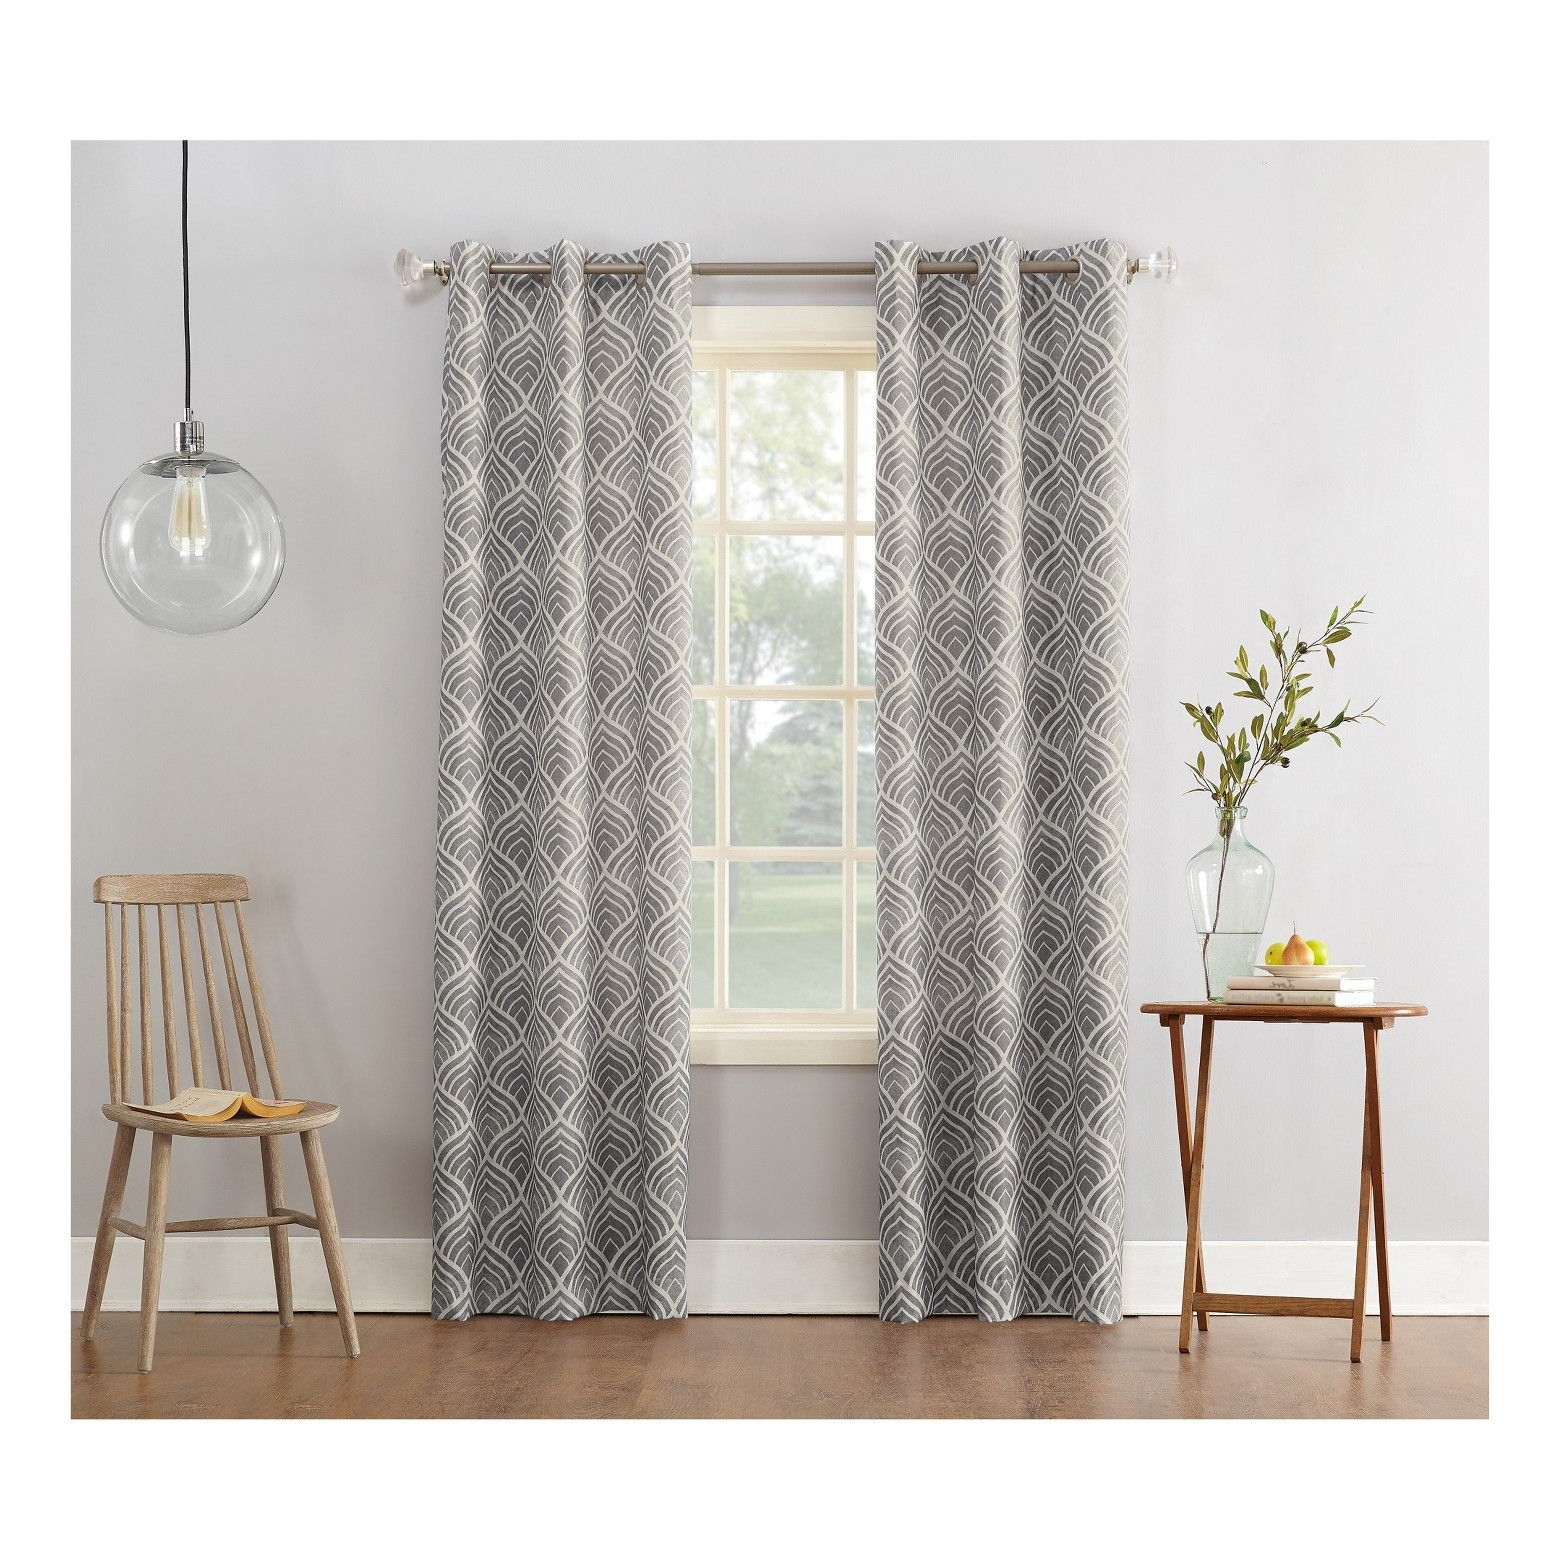 Newest Sun Zero Clarke Geometric Print Textured Thermal Insulated Pertaining To Geometric Print Textured Thermal Insulated Grommet Curtain Panels (View 8 of 20)